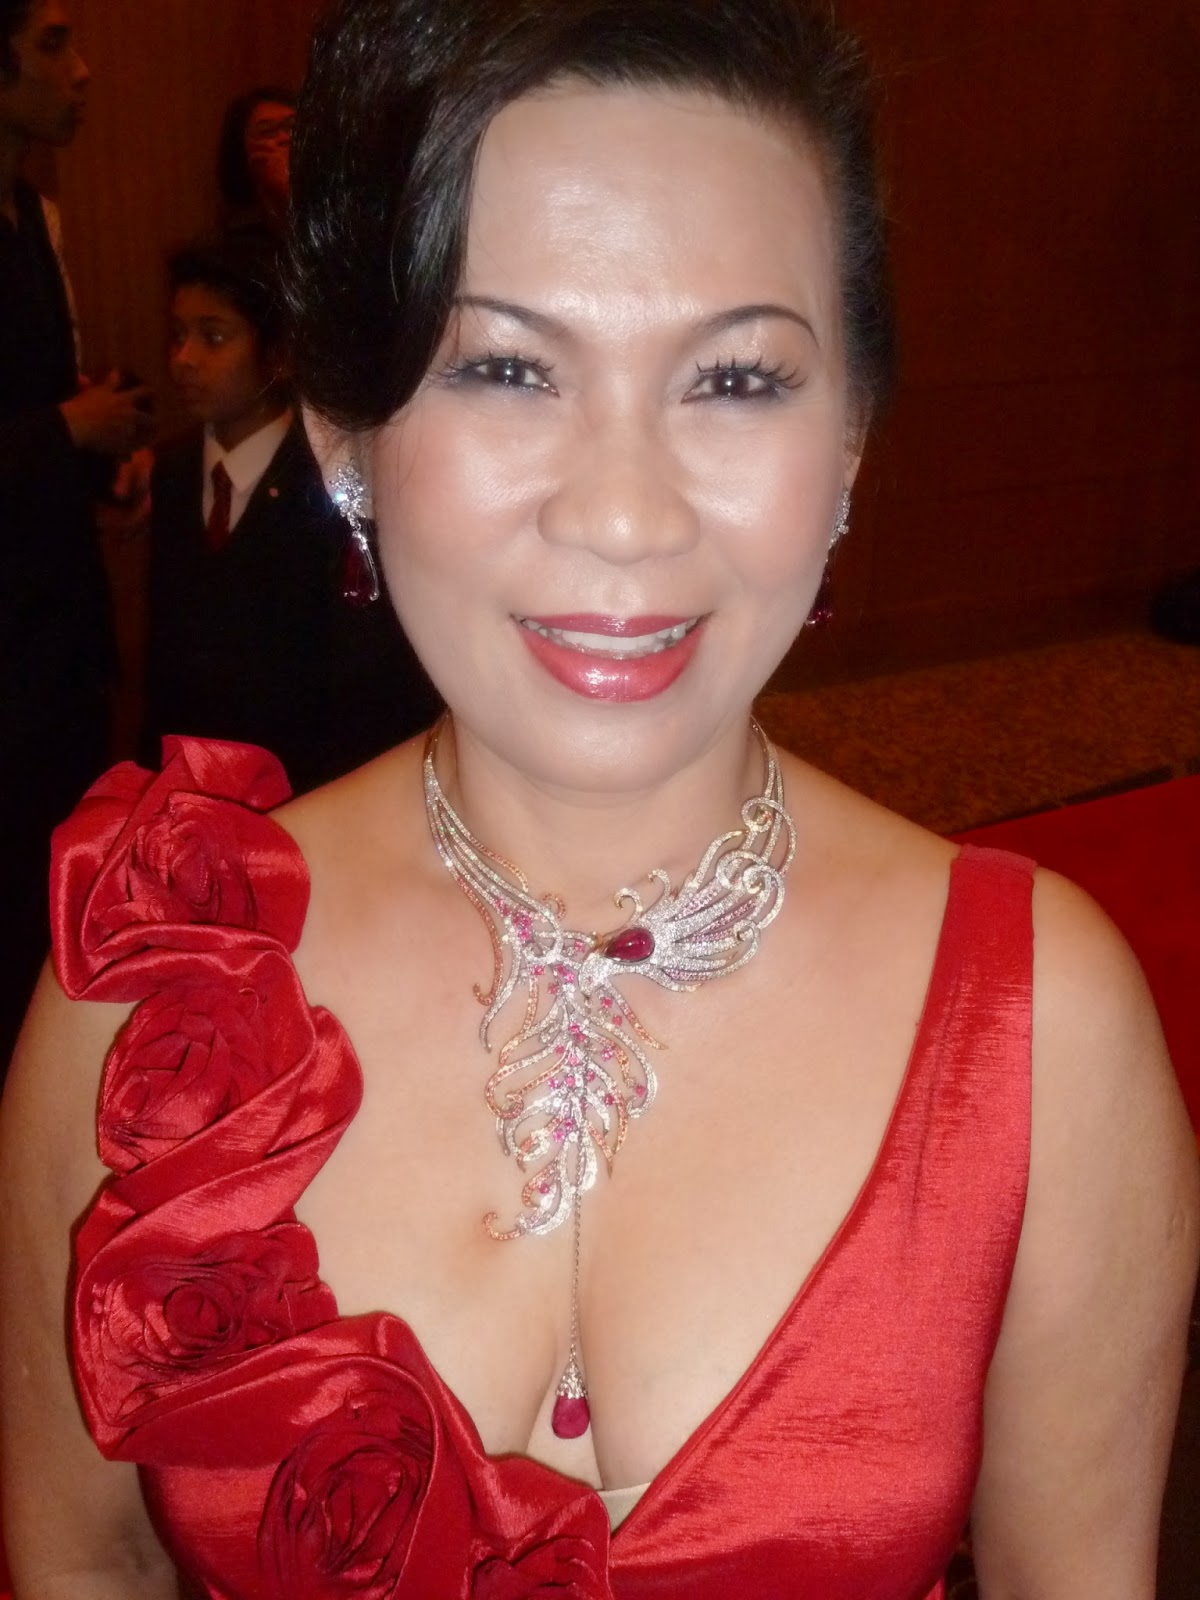 penang asian personals Get to know gay malaysia meet people in the gay and lesbian community, connect with our gay chat, and find the best places to shop and eat.